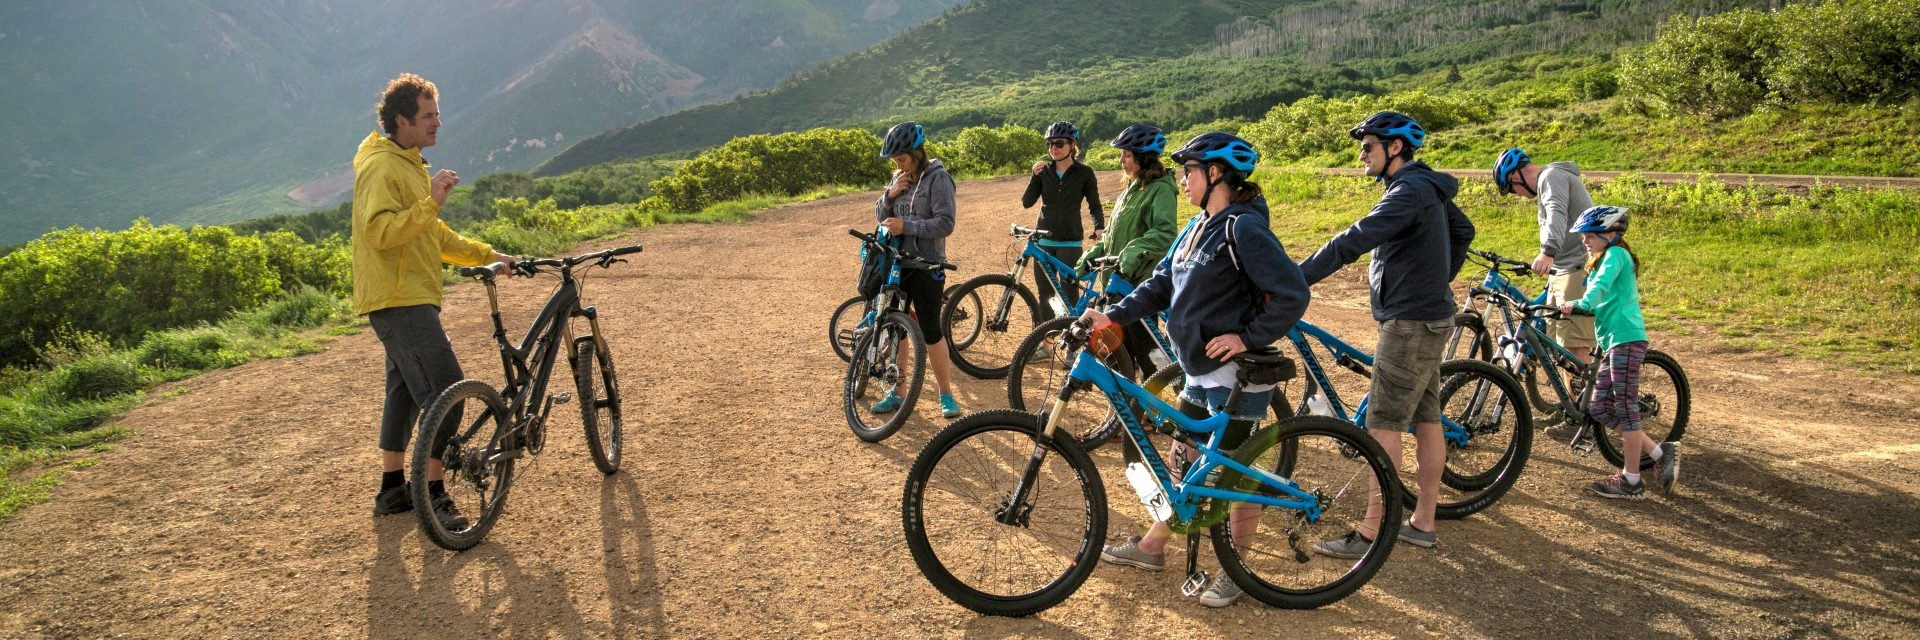 A guide gives beginner riders instructions on basic bike operations after breakfast and before launching on the Sunrise Downhill ride